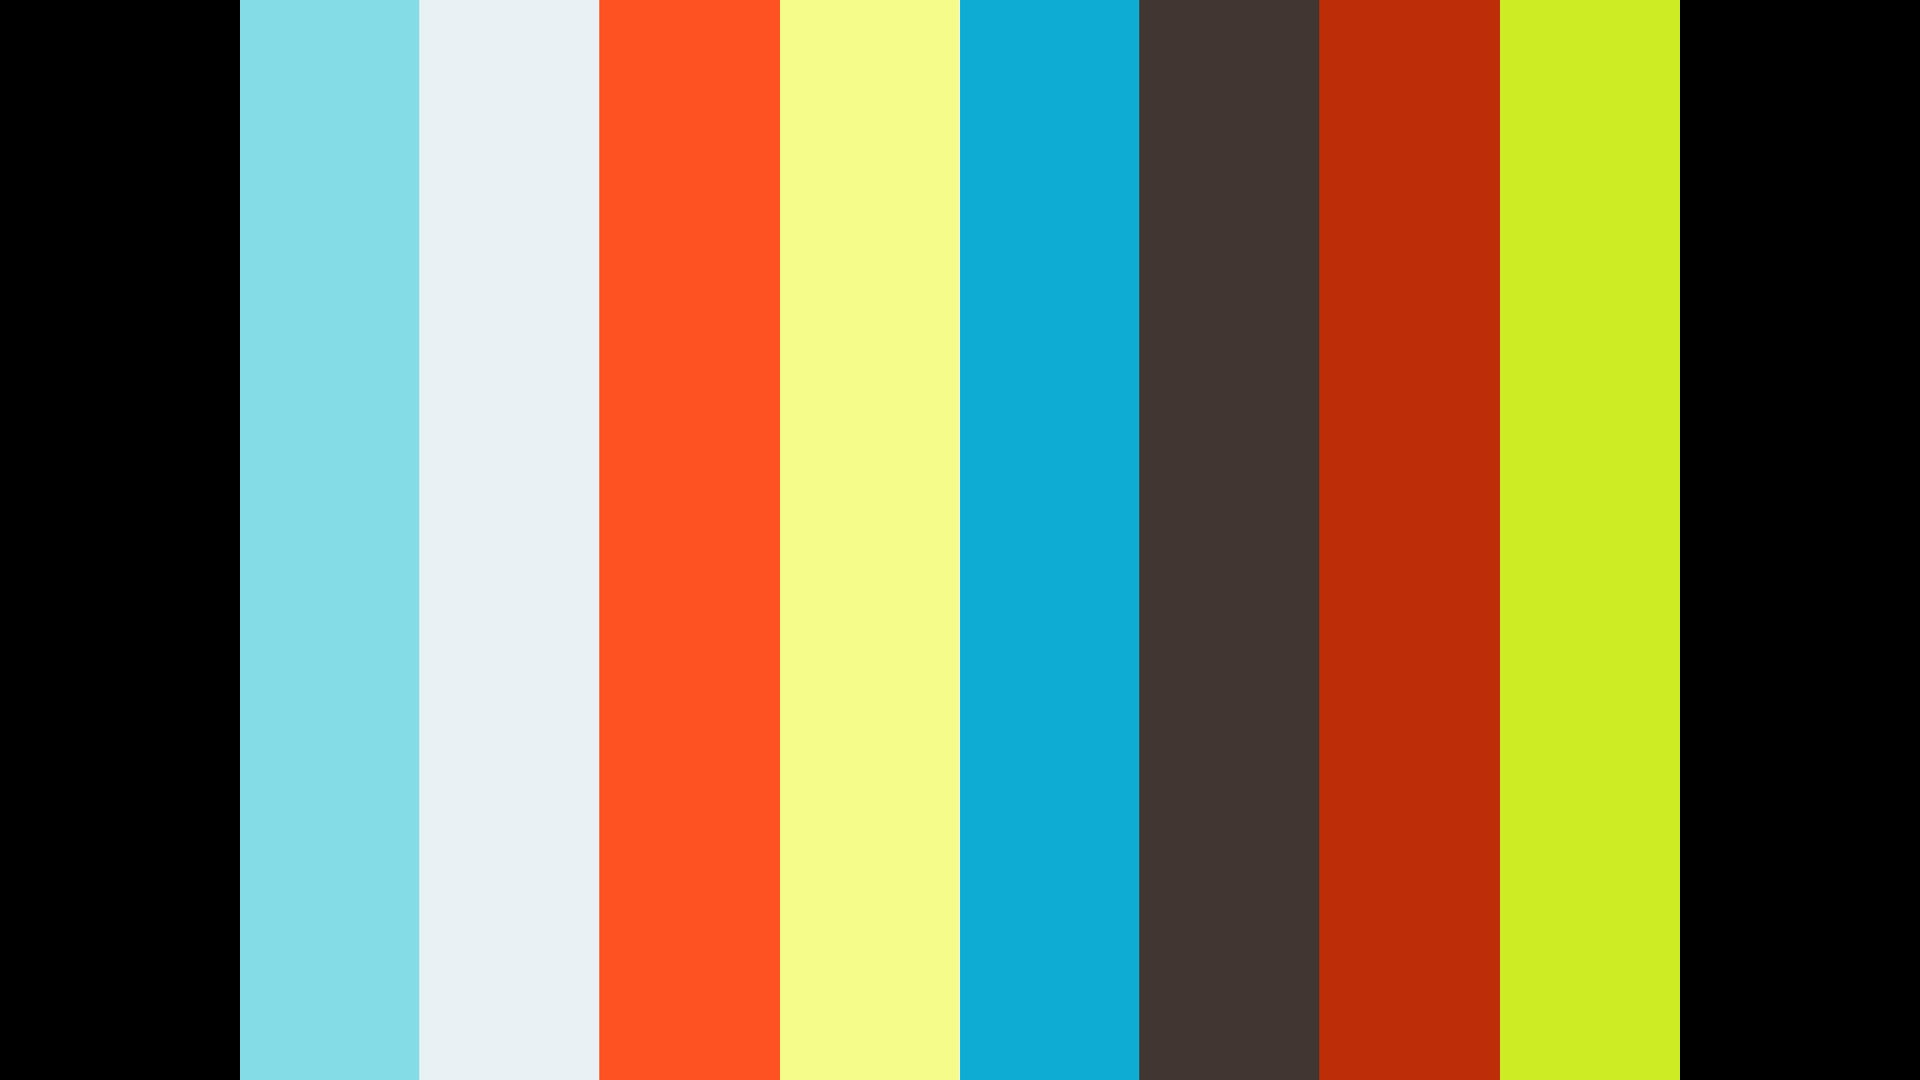 2019 KONA WORLDS (GARDA) - DAY 1